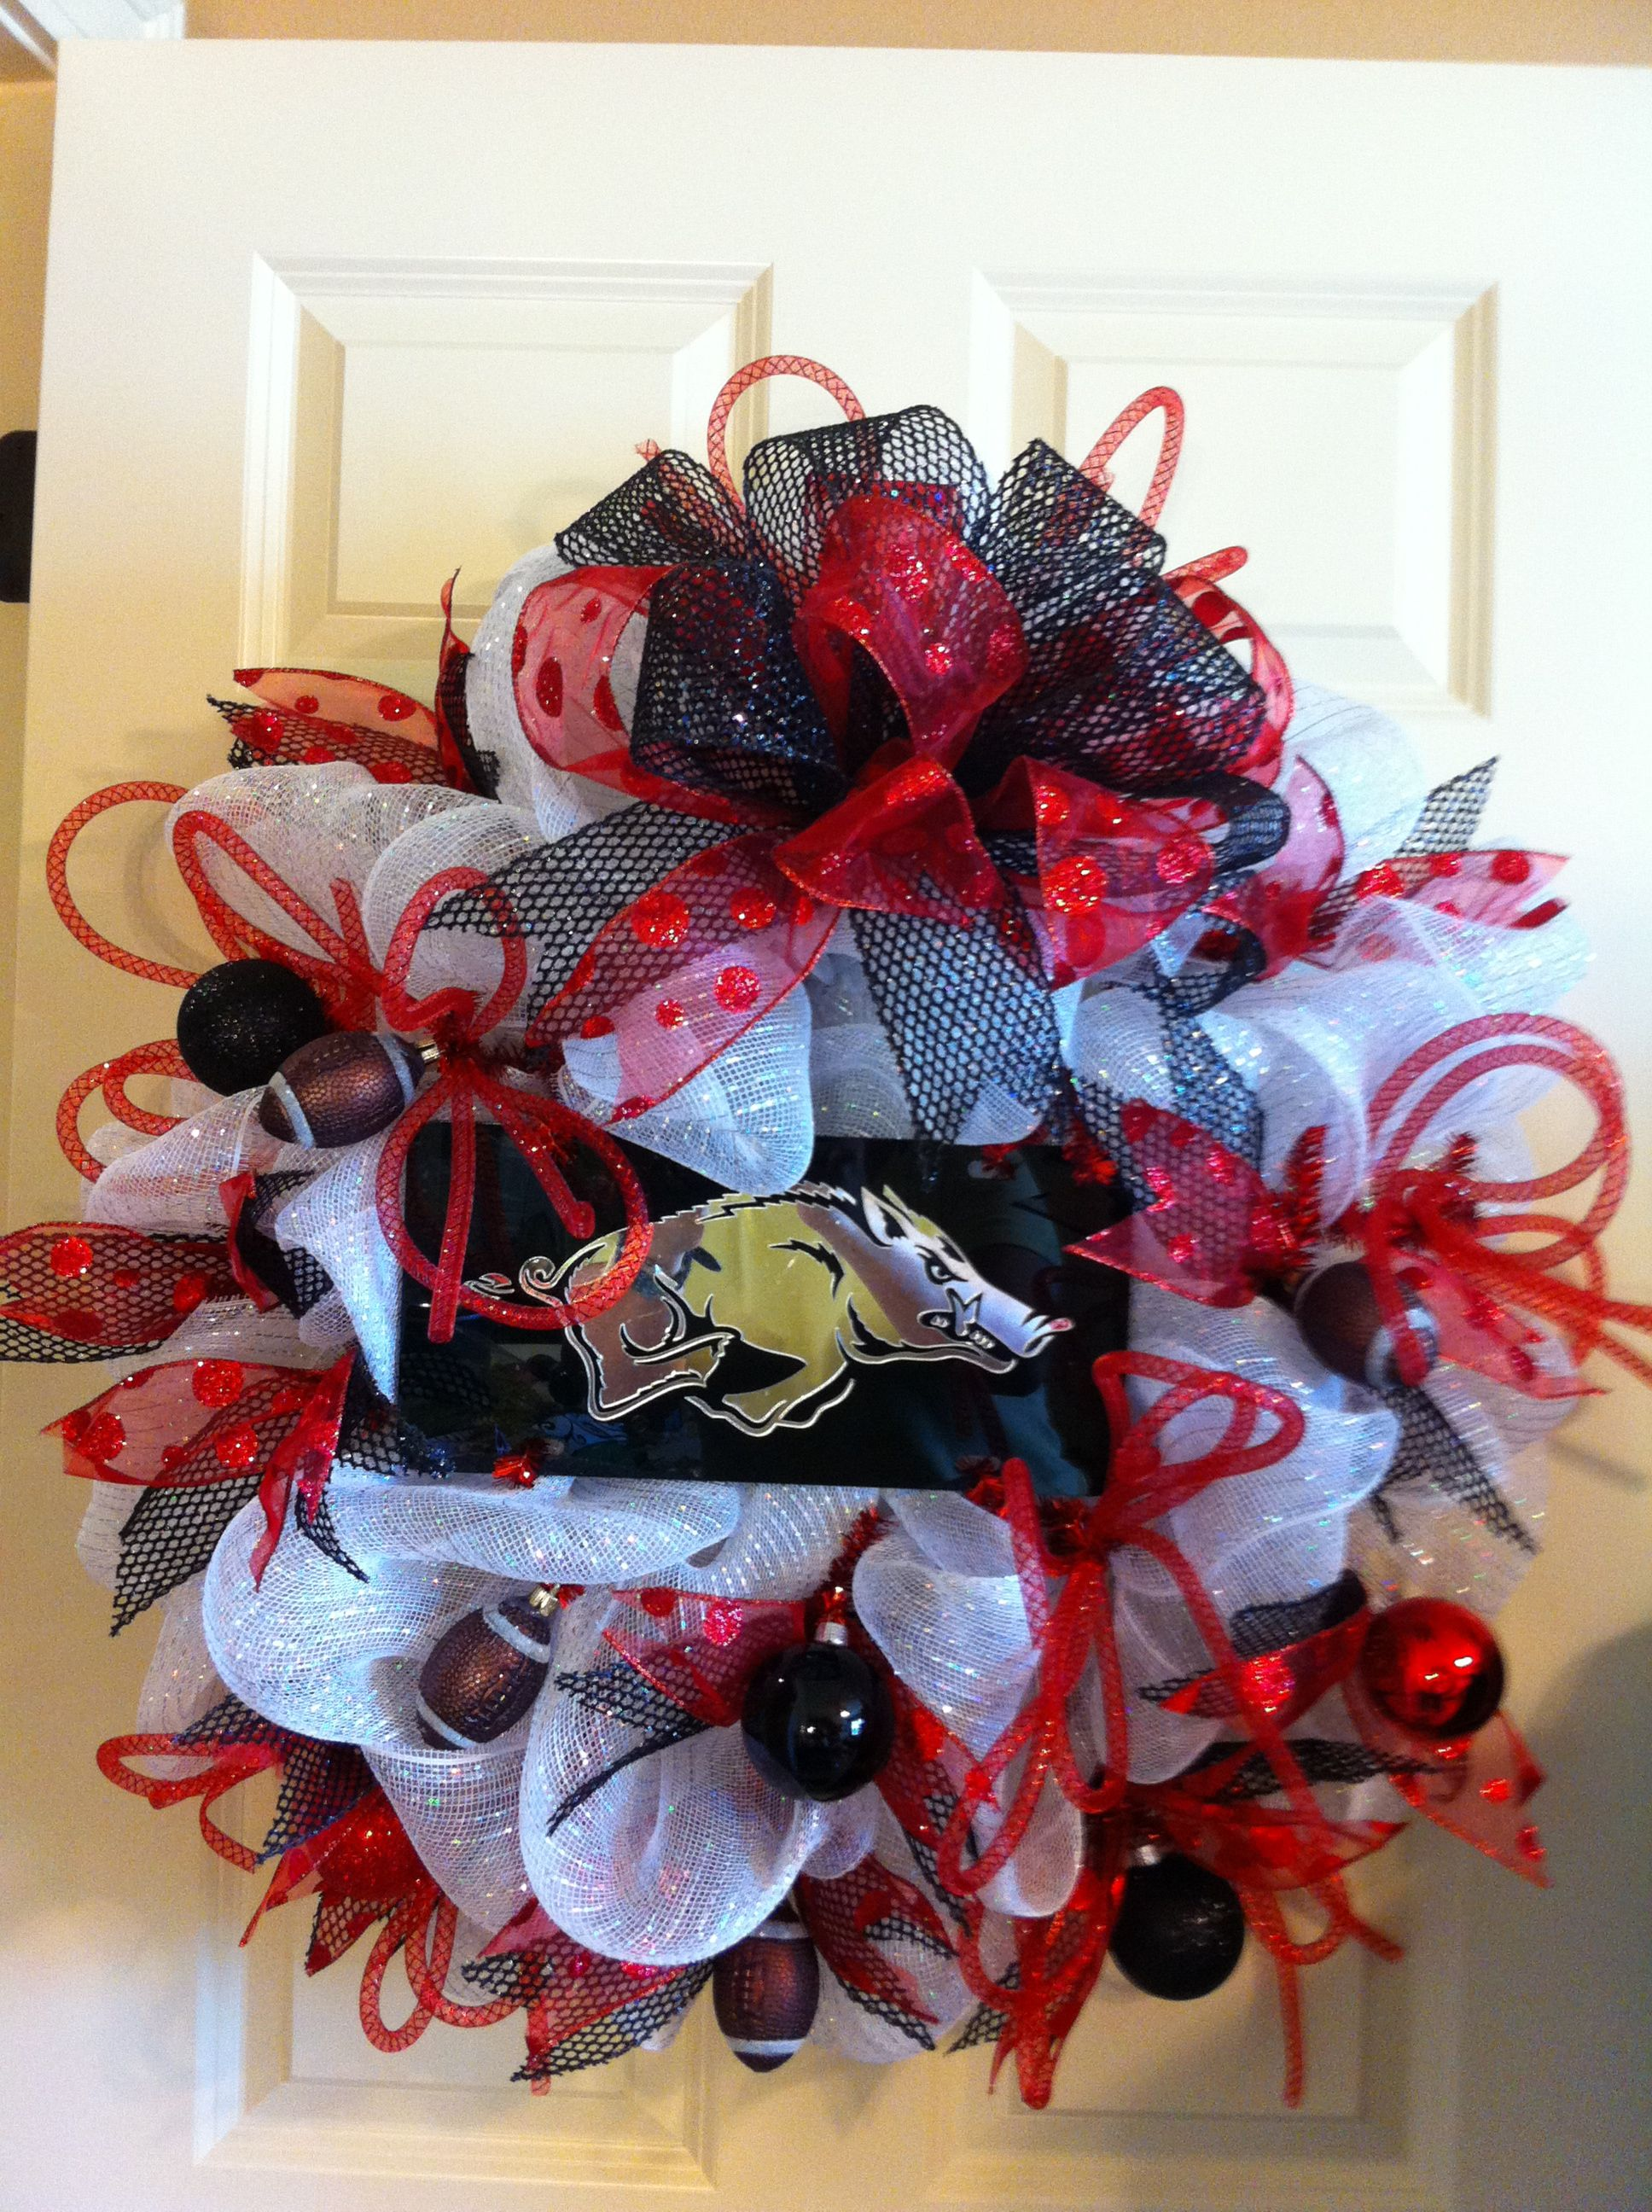 wreath of diy wreaths specialdirectory net fresh decor collection football razorback razorbacks luxury arkansas